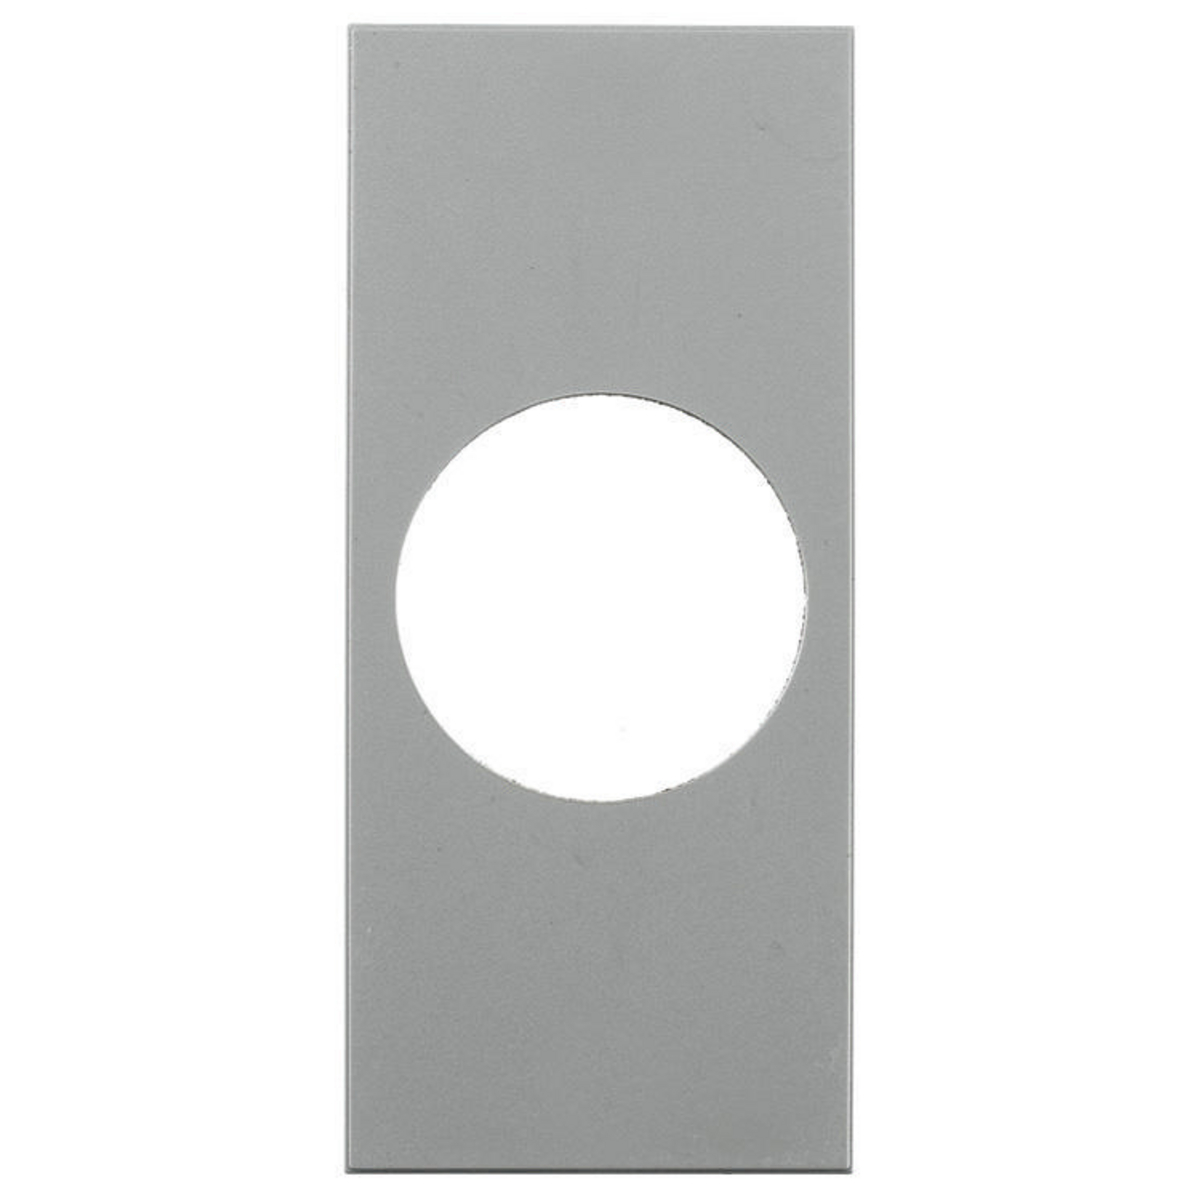 Hubbell HBLTL318GY MOD FACE PLATE, T-L 20A, SNAP-IN, GY